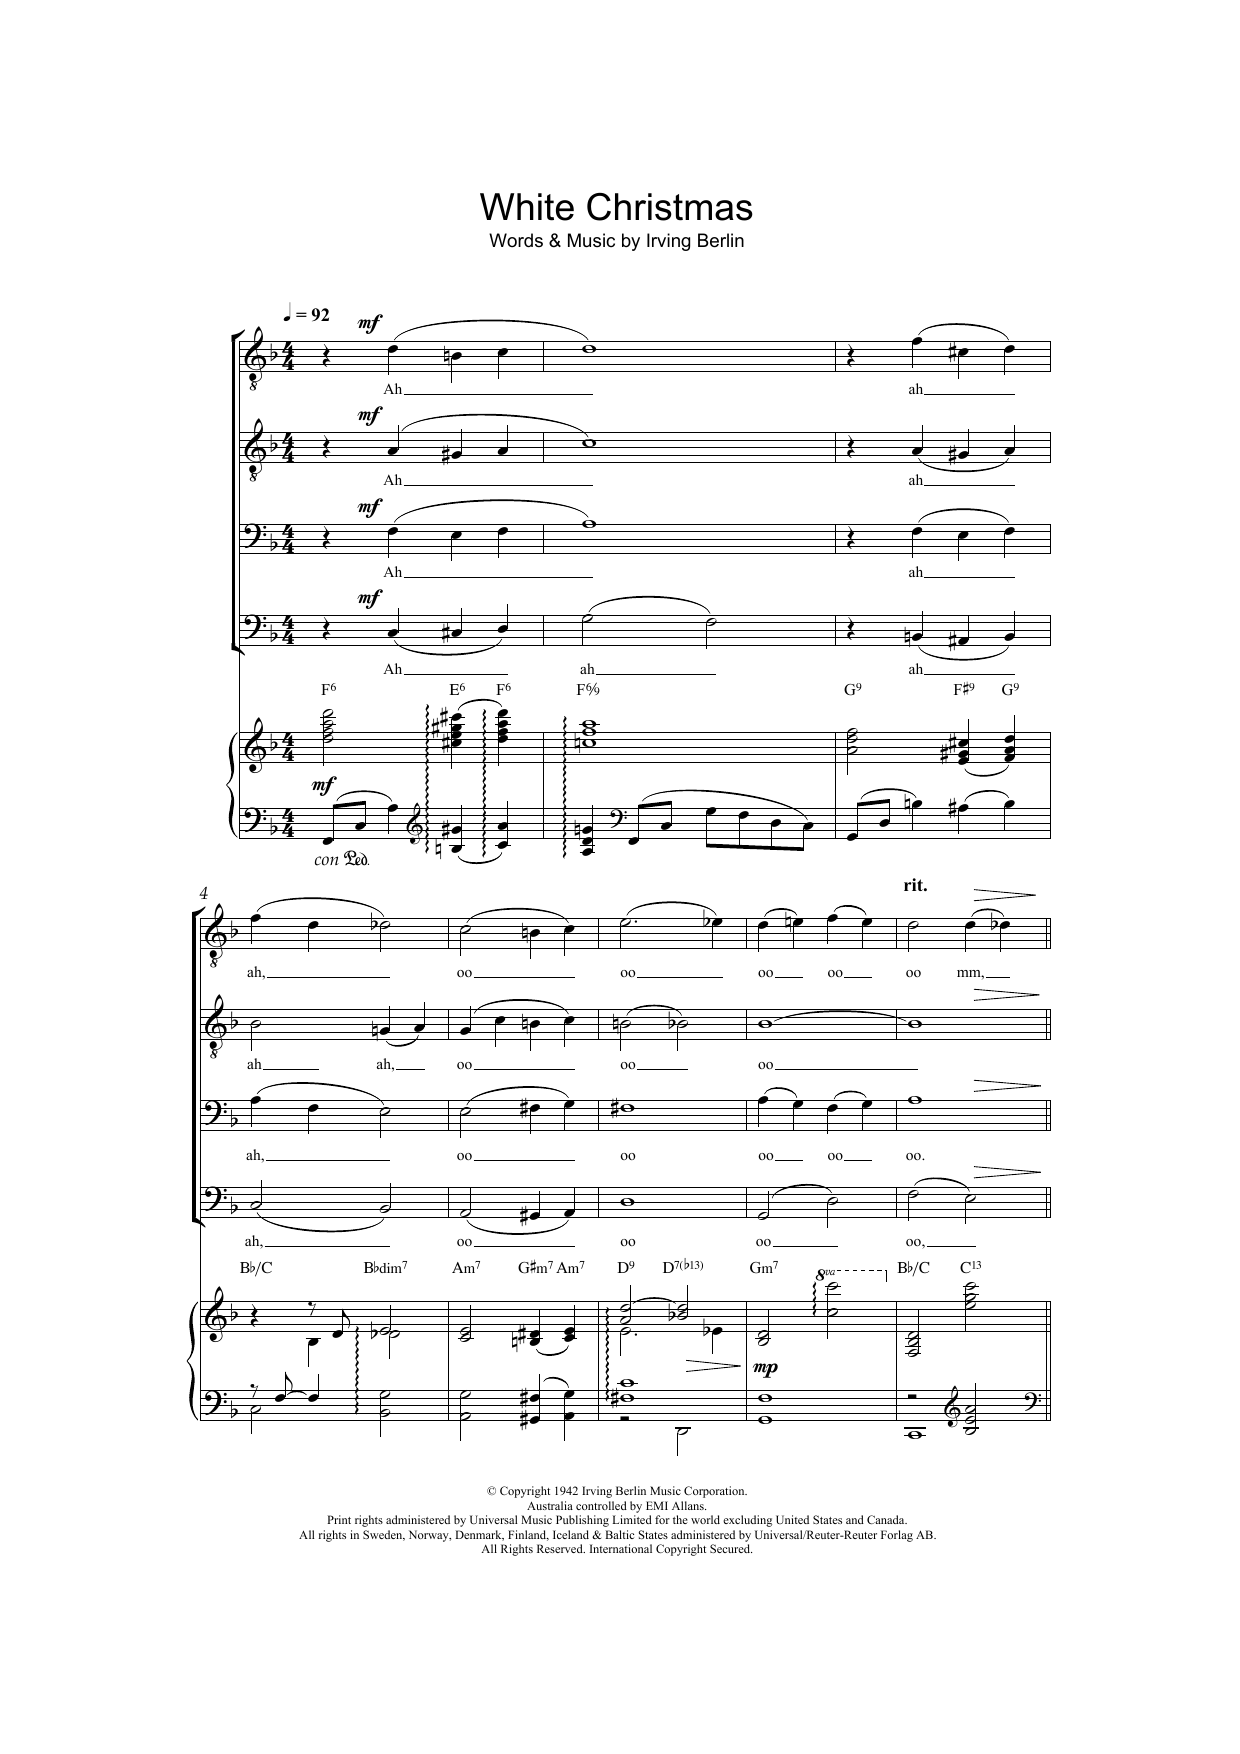 White Christmas Lyrics.White Christmas By Bing Crosby Guitar Chords Lyrics Digital Sheet Music